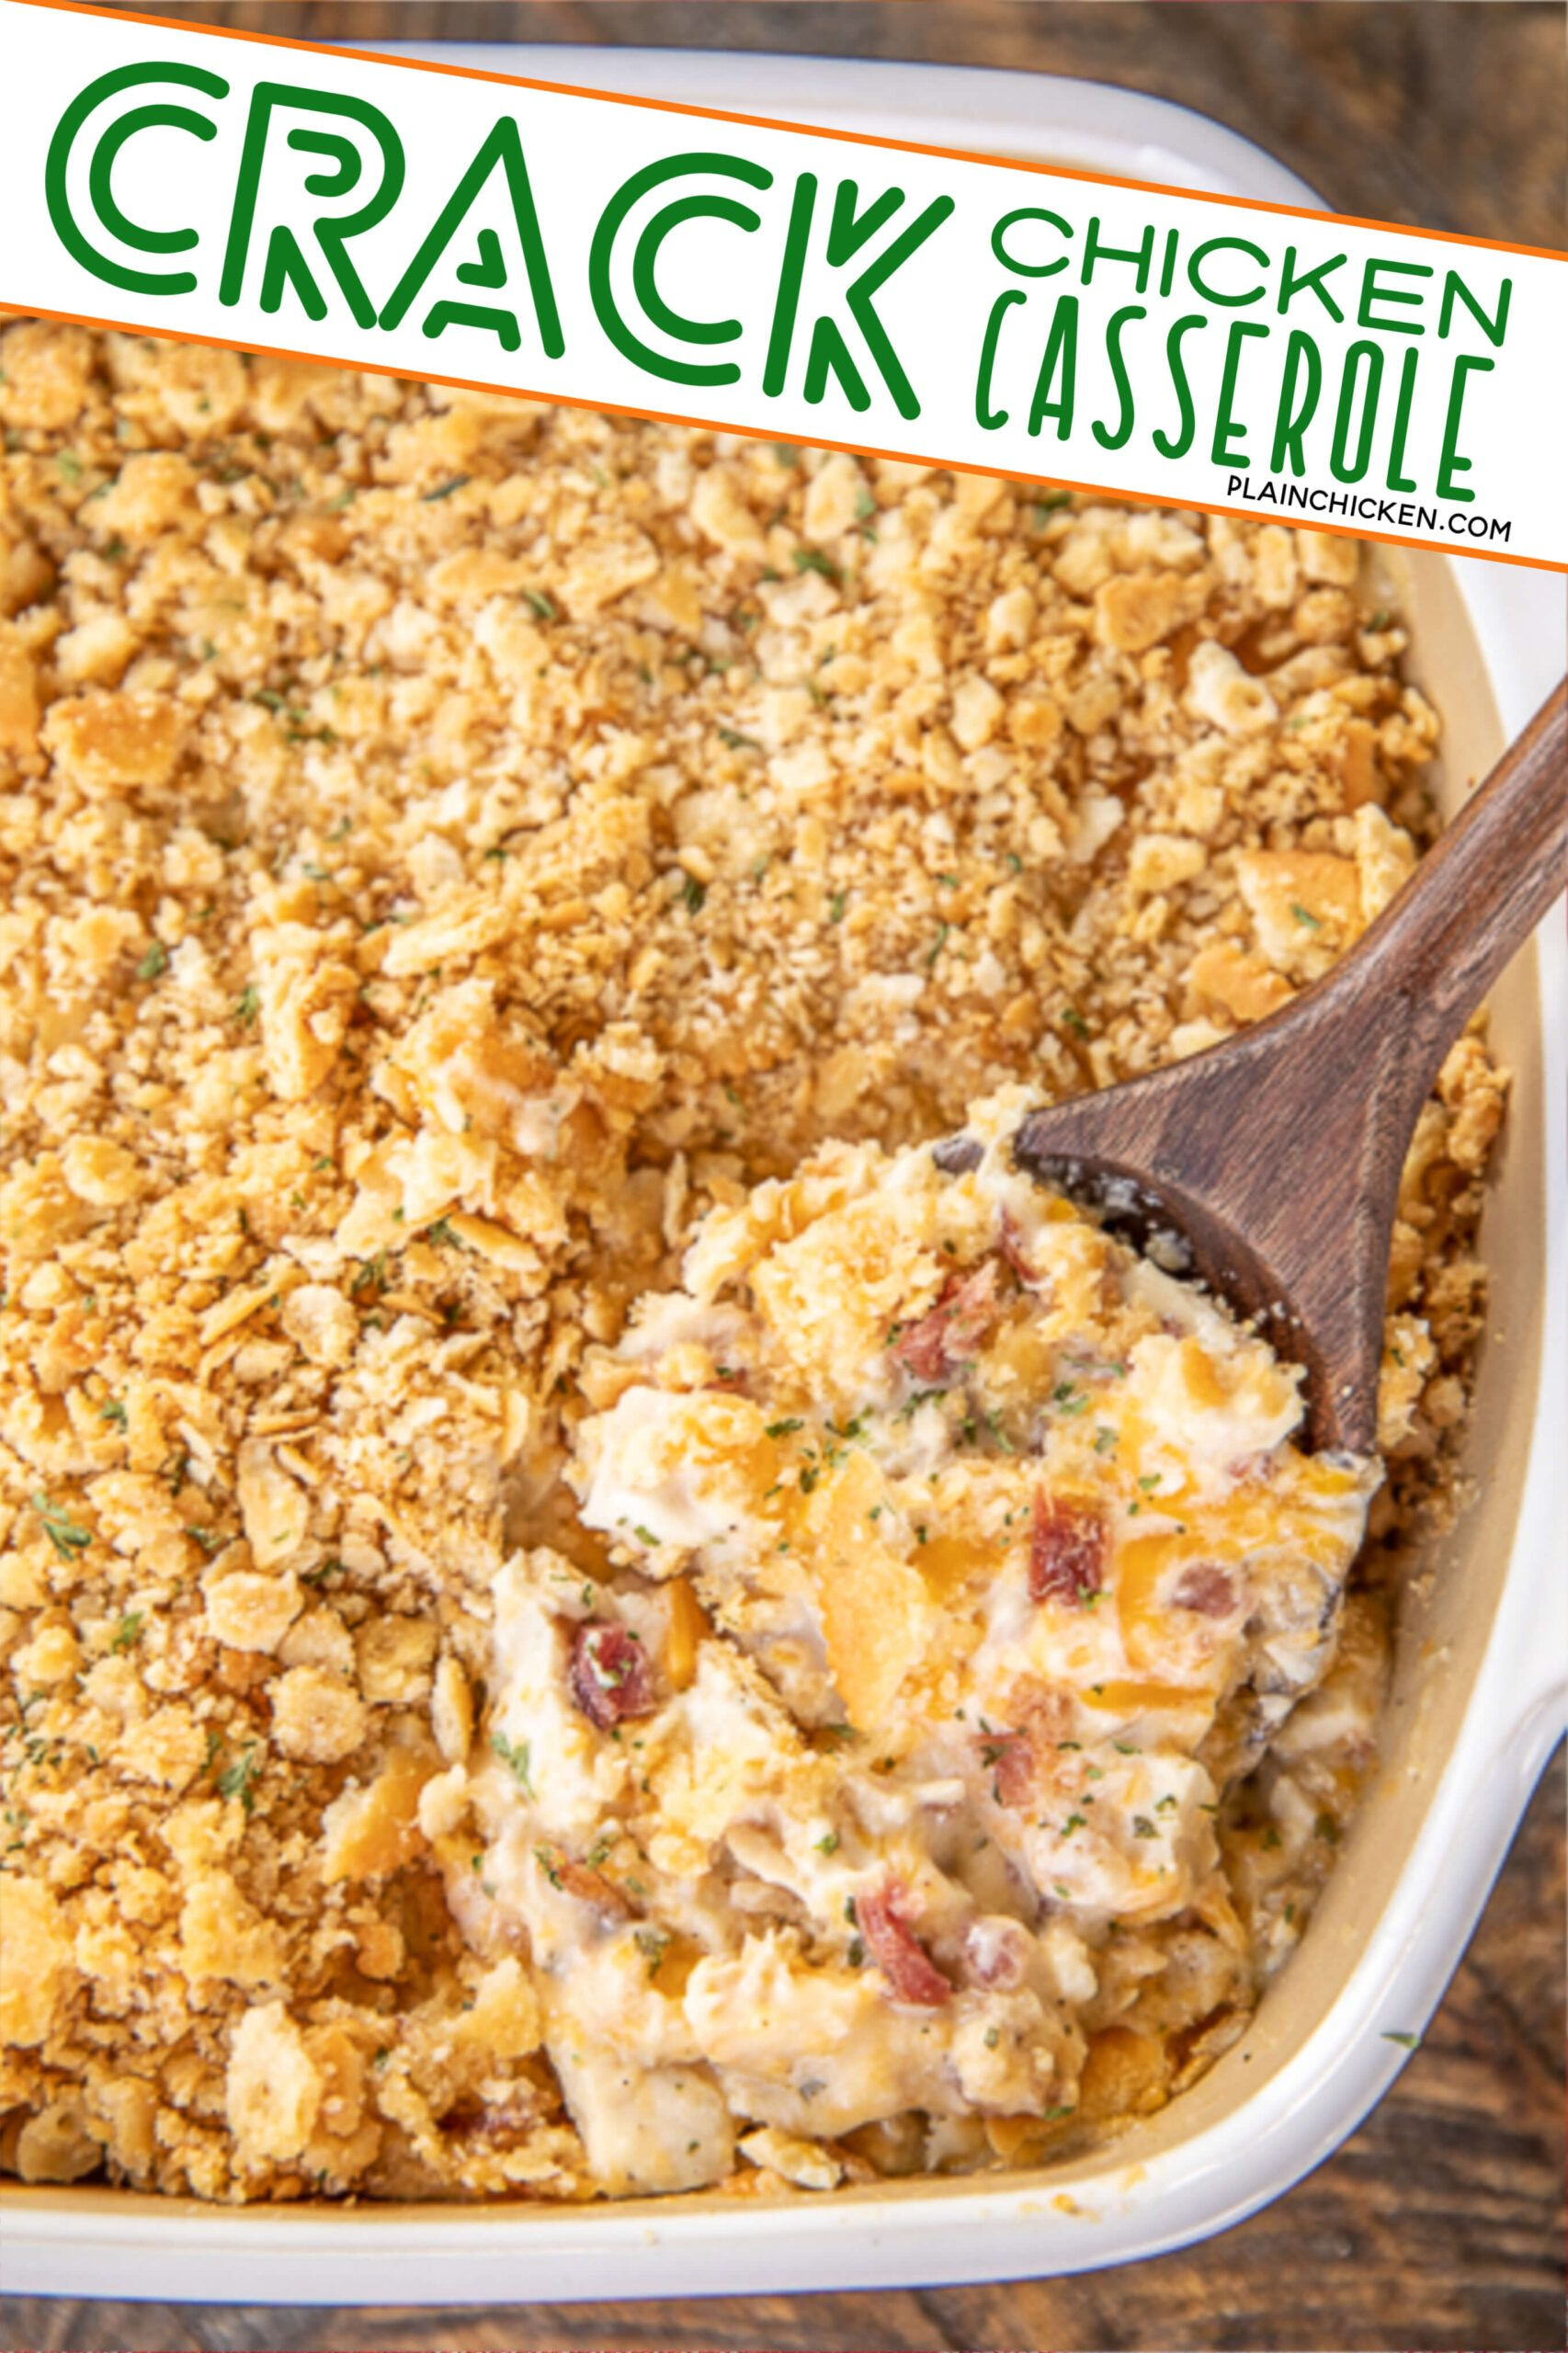 Crack Chicken Casserole - creamy chicken casserole loaded with cheddar, bacon and ranch. Use a rotisserie chicken for easy prep! Chicken, cheddar, bacon, ranch seasoning, sour cream, cream of chicken soup. The whole family LOVED this easy chicken casserole. It is already on the menu again this week! #chicken #casserole #chickencasserole